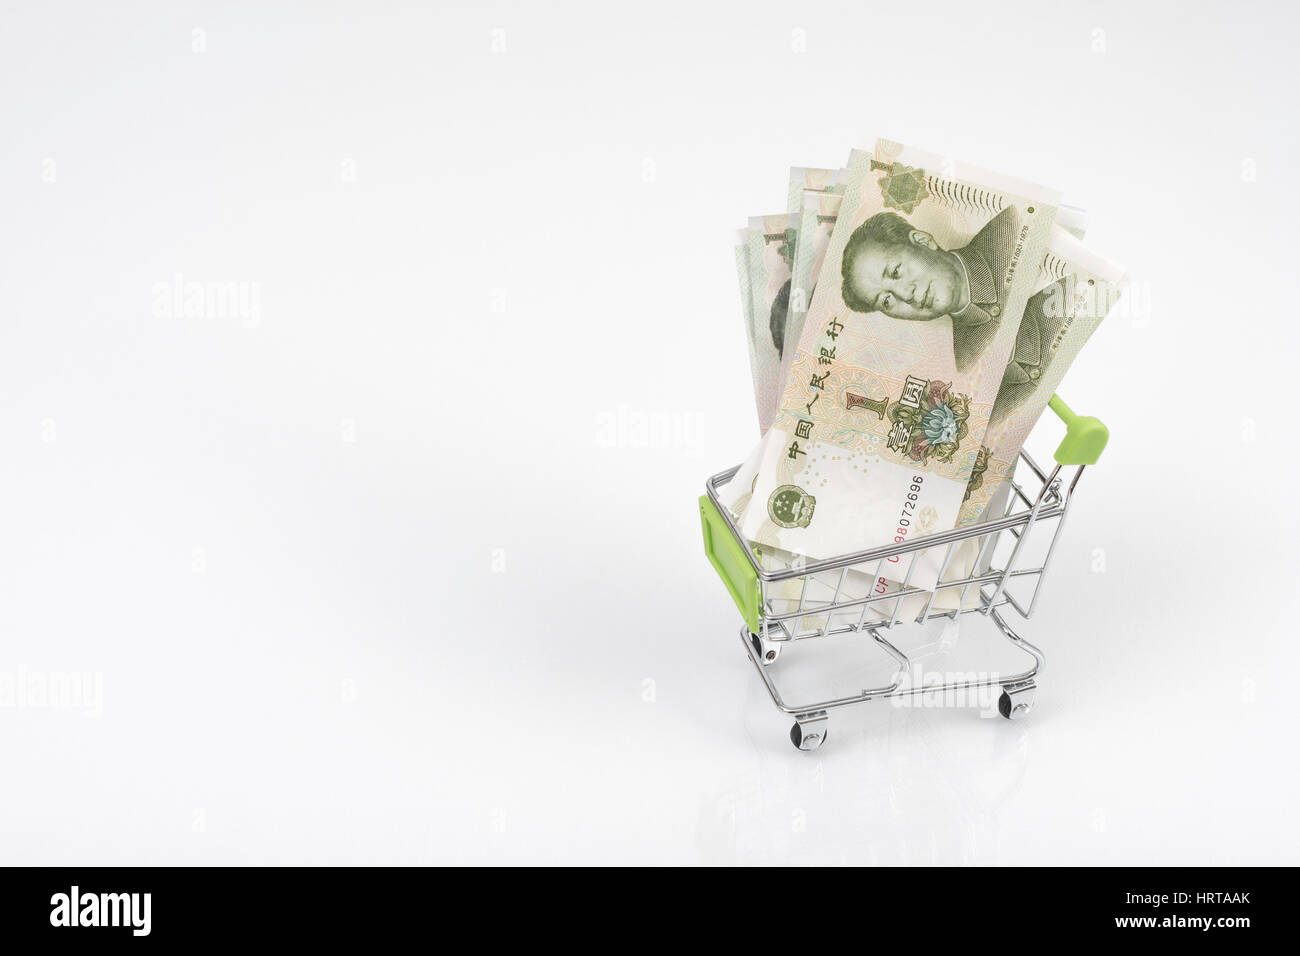 1 Yuan bills / banknotes in shopping cart / trolley against light background. Metaphor for Chinese economy, budget, - Stock Image